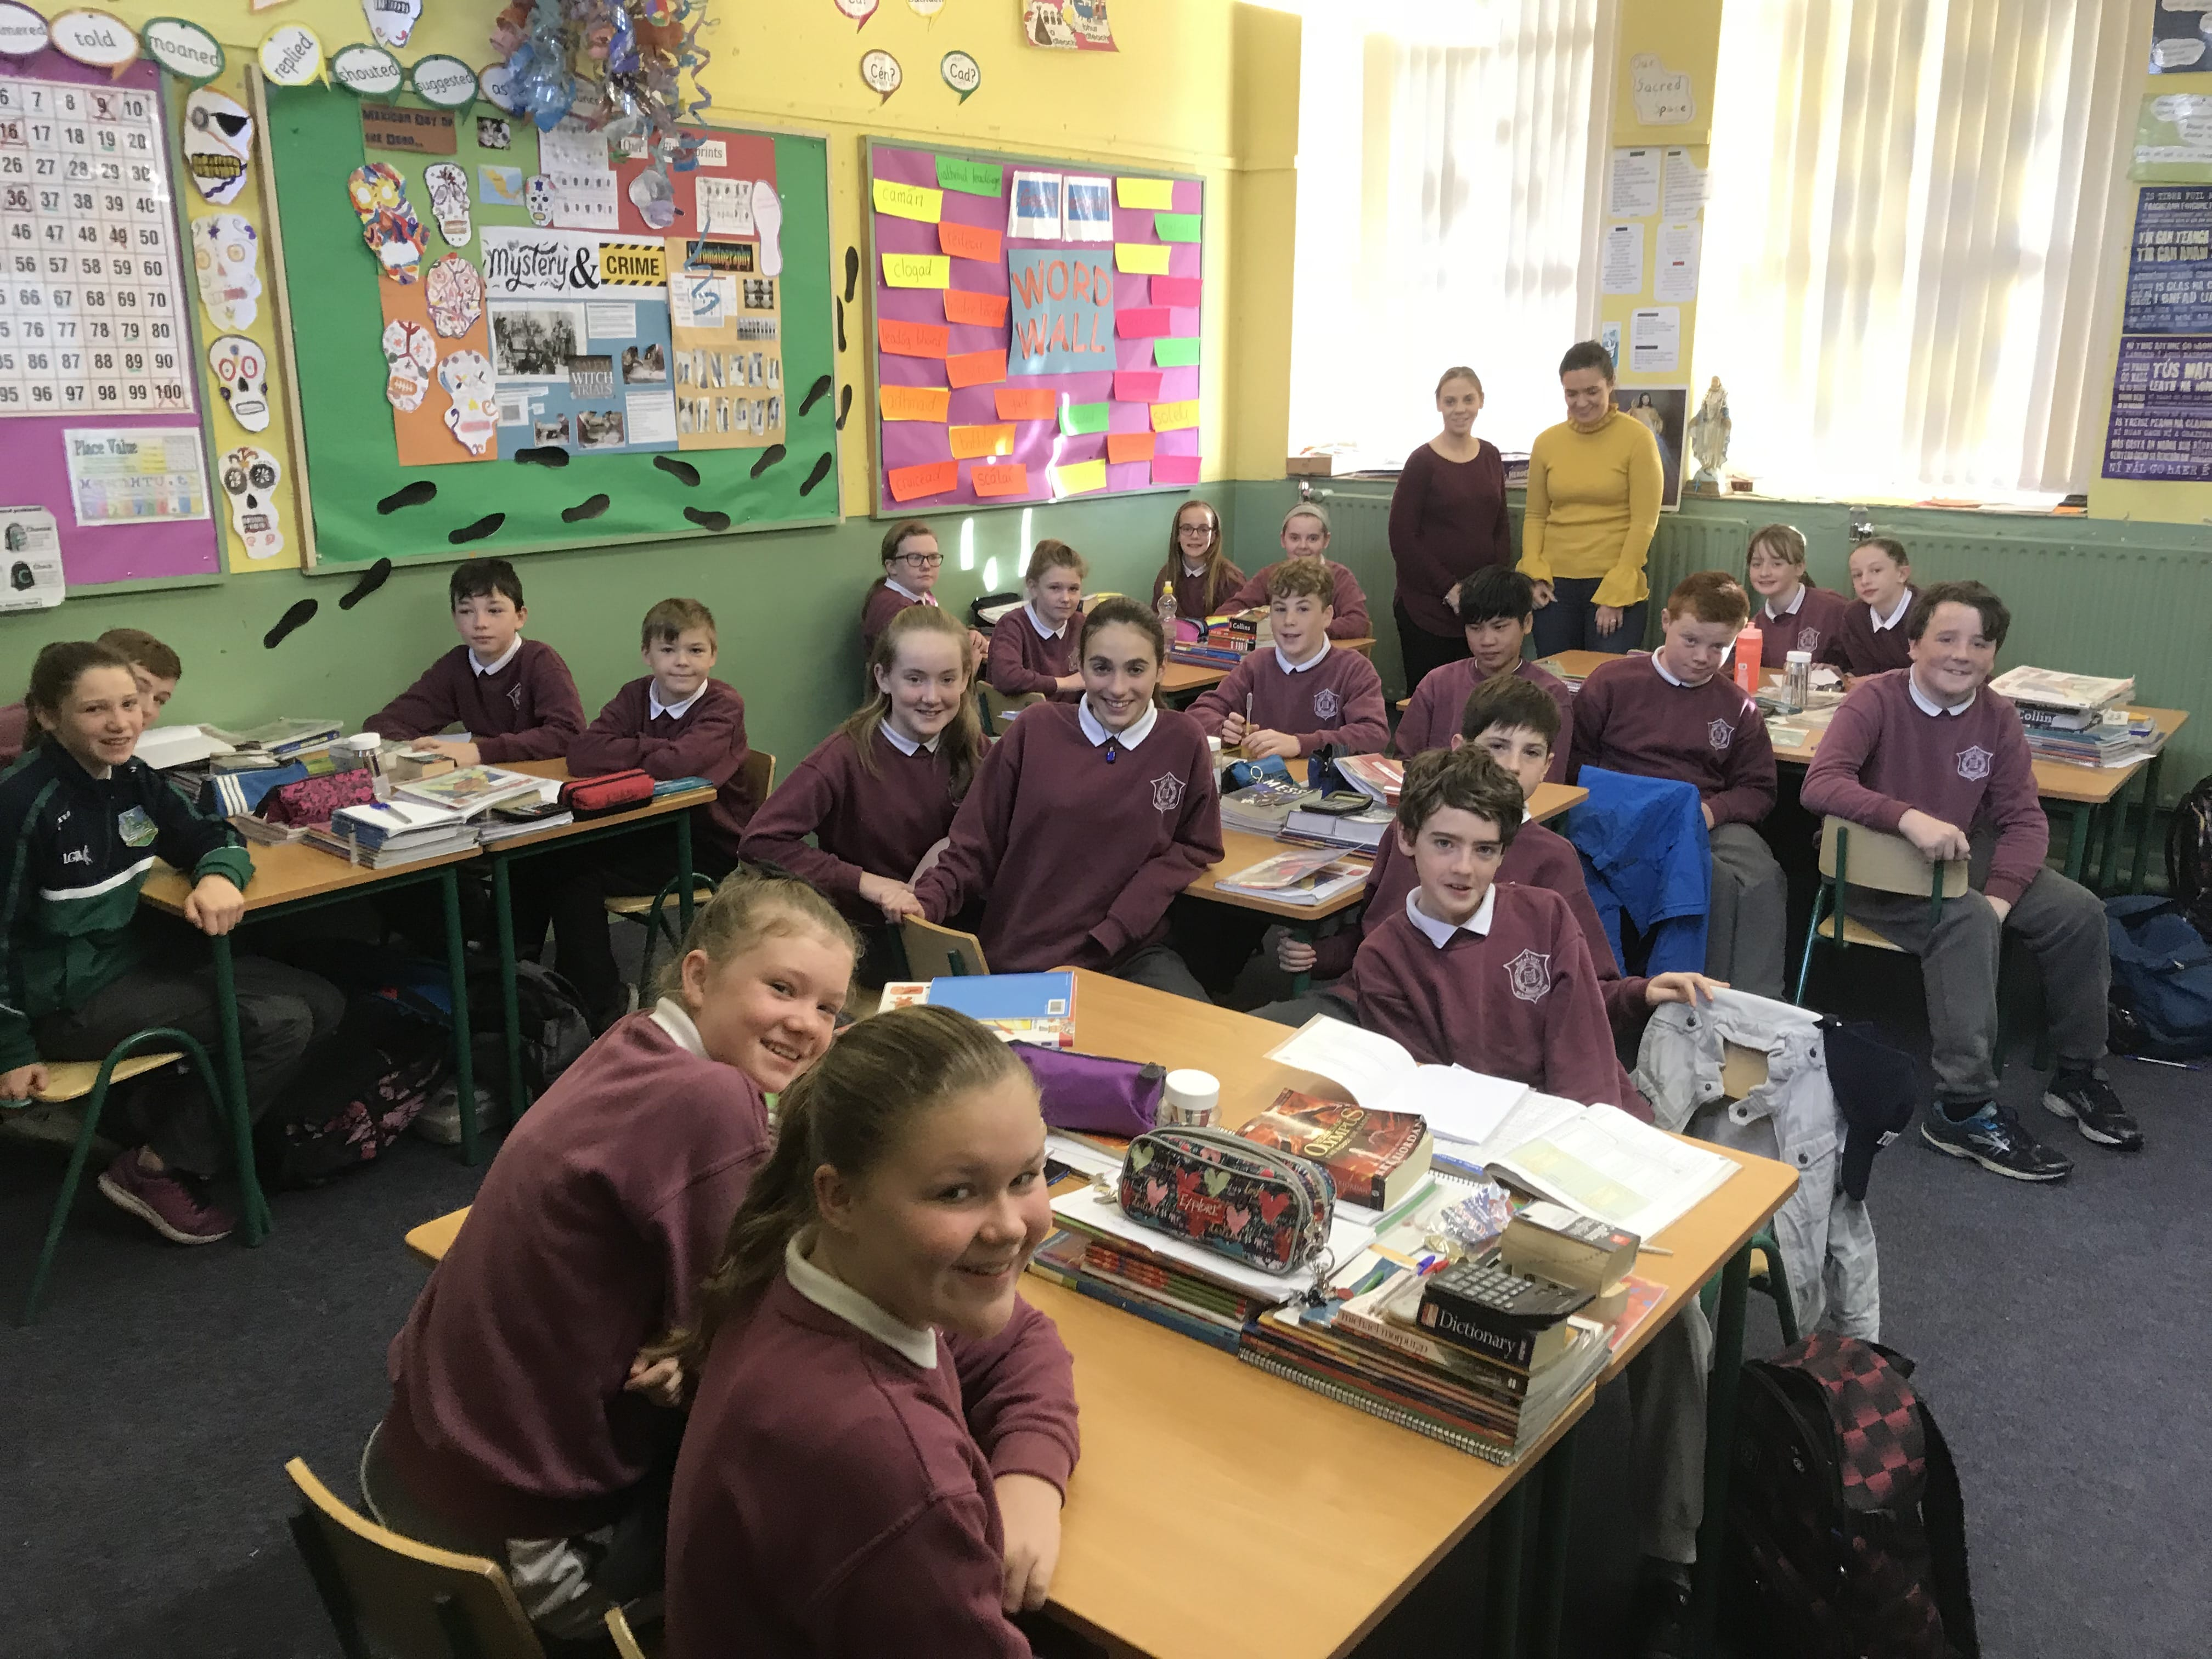 Nov 2017: The Sixth Class students in Shanagolden National School along with Ms Culhane and Ms Corkery Desmond College Teachers